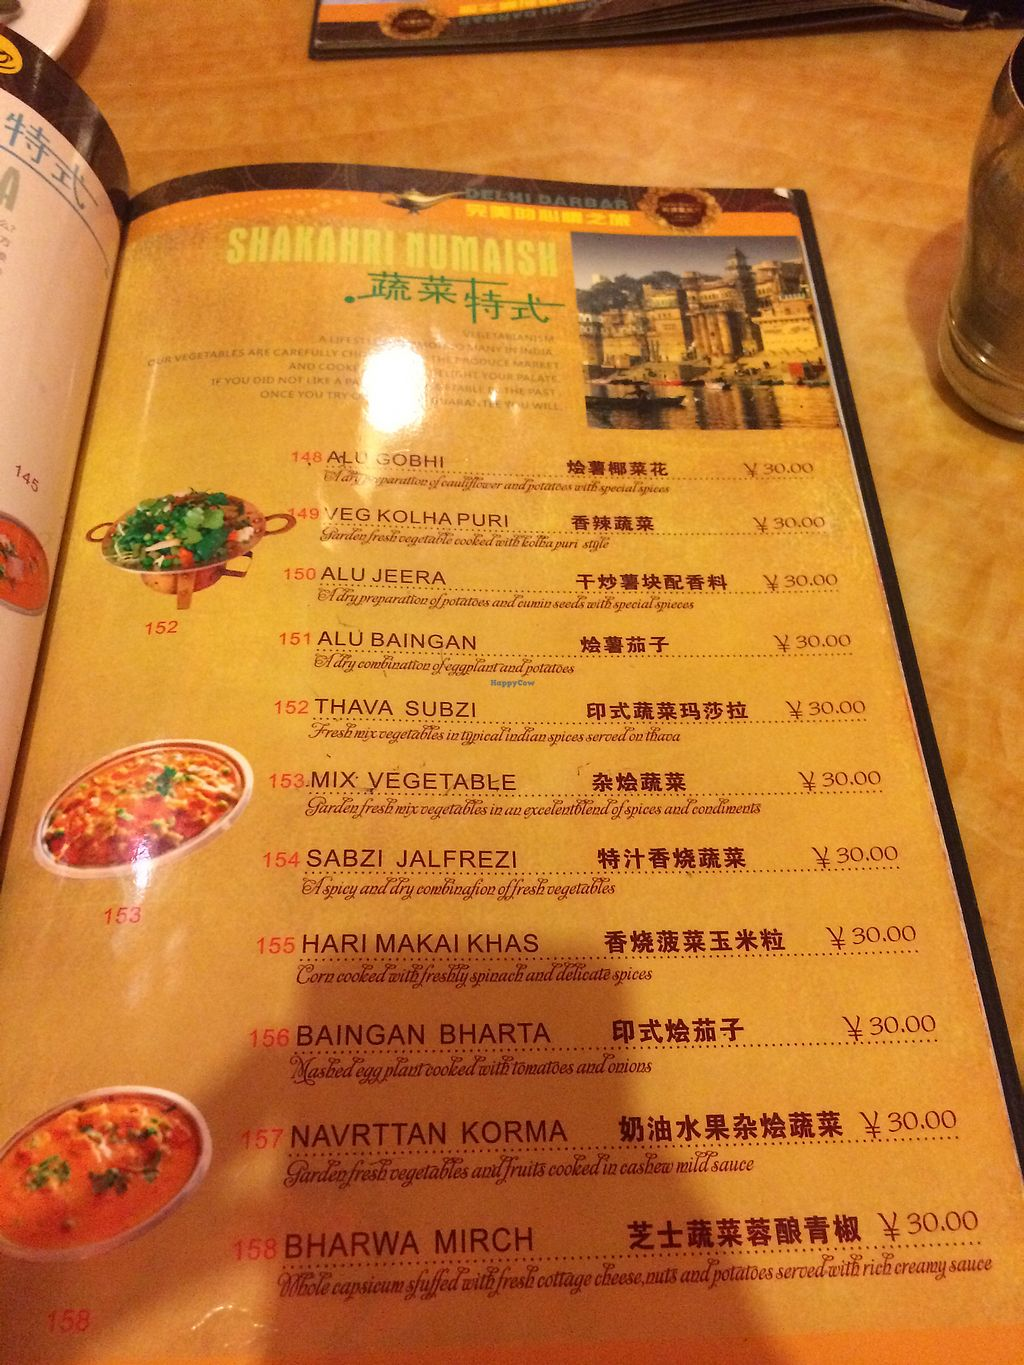 """Photo of Delhi Darbar  by <a href=""""/members/profile/Italian.vegan"""">Italian.vegan</a> <br/>Some options on the menu - there is lots of vegetarian <br/> October 10, 2017  - <a href='/contact/abuse/image/22748/313933'>Report</a>"""